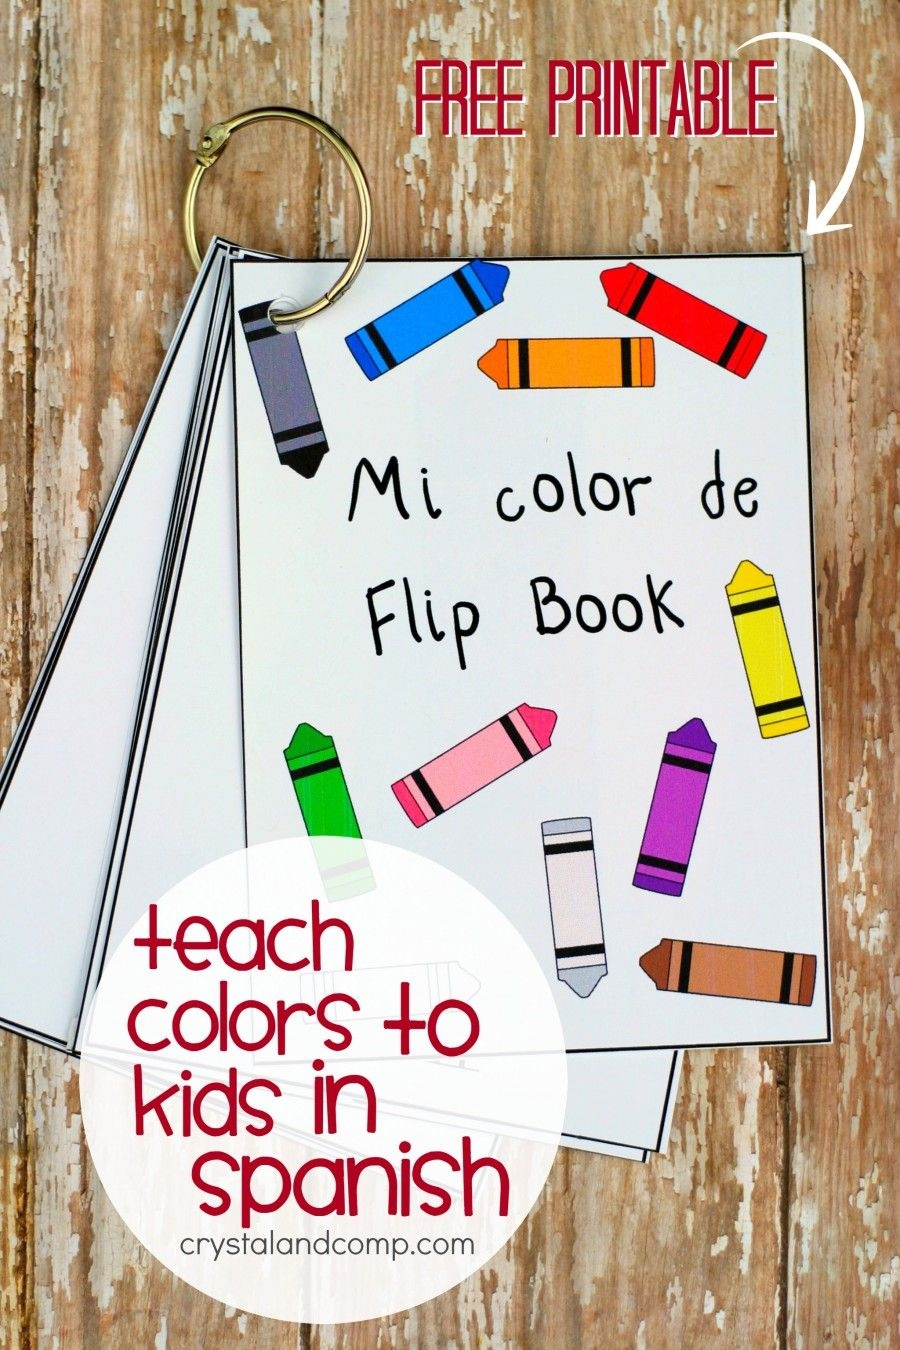 Teach Colors To Kids In Spanish Flip Book | All Things Parenting - Free Printable Spanish Books